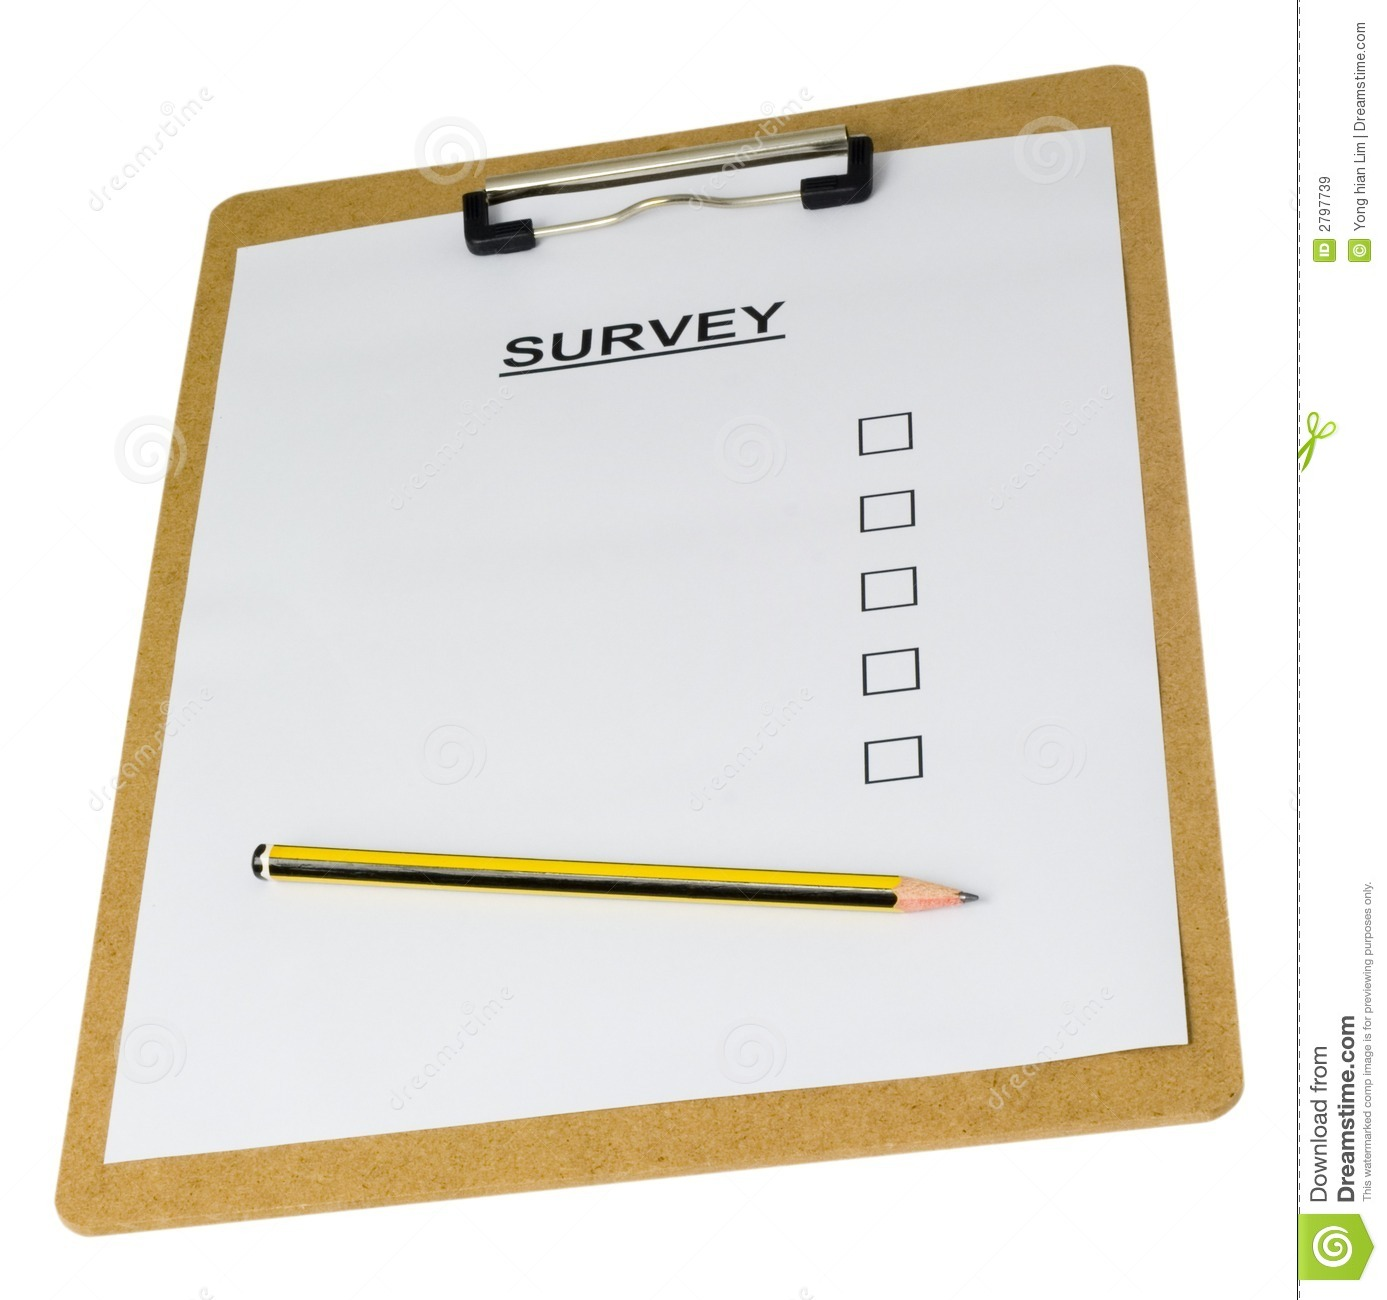 Survey Clipart Animated.